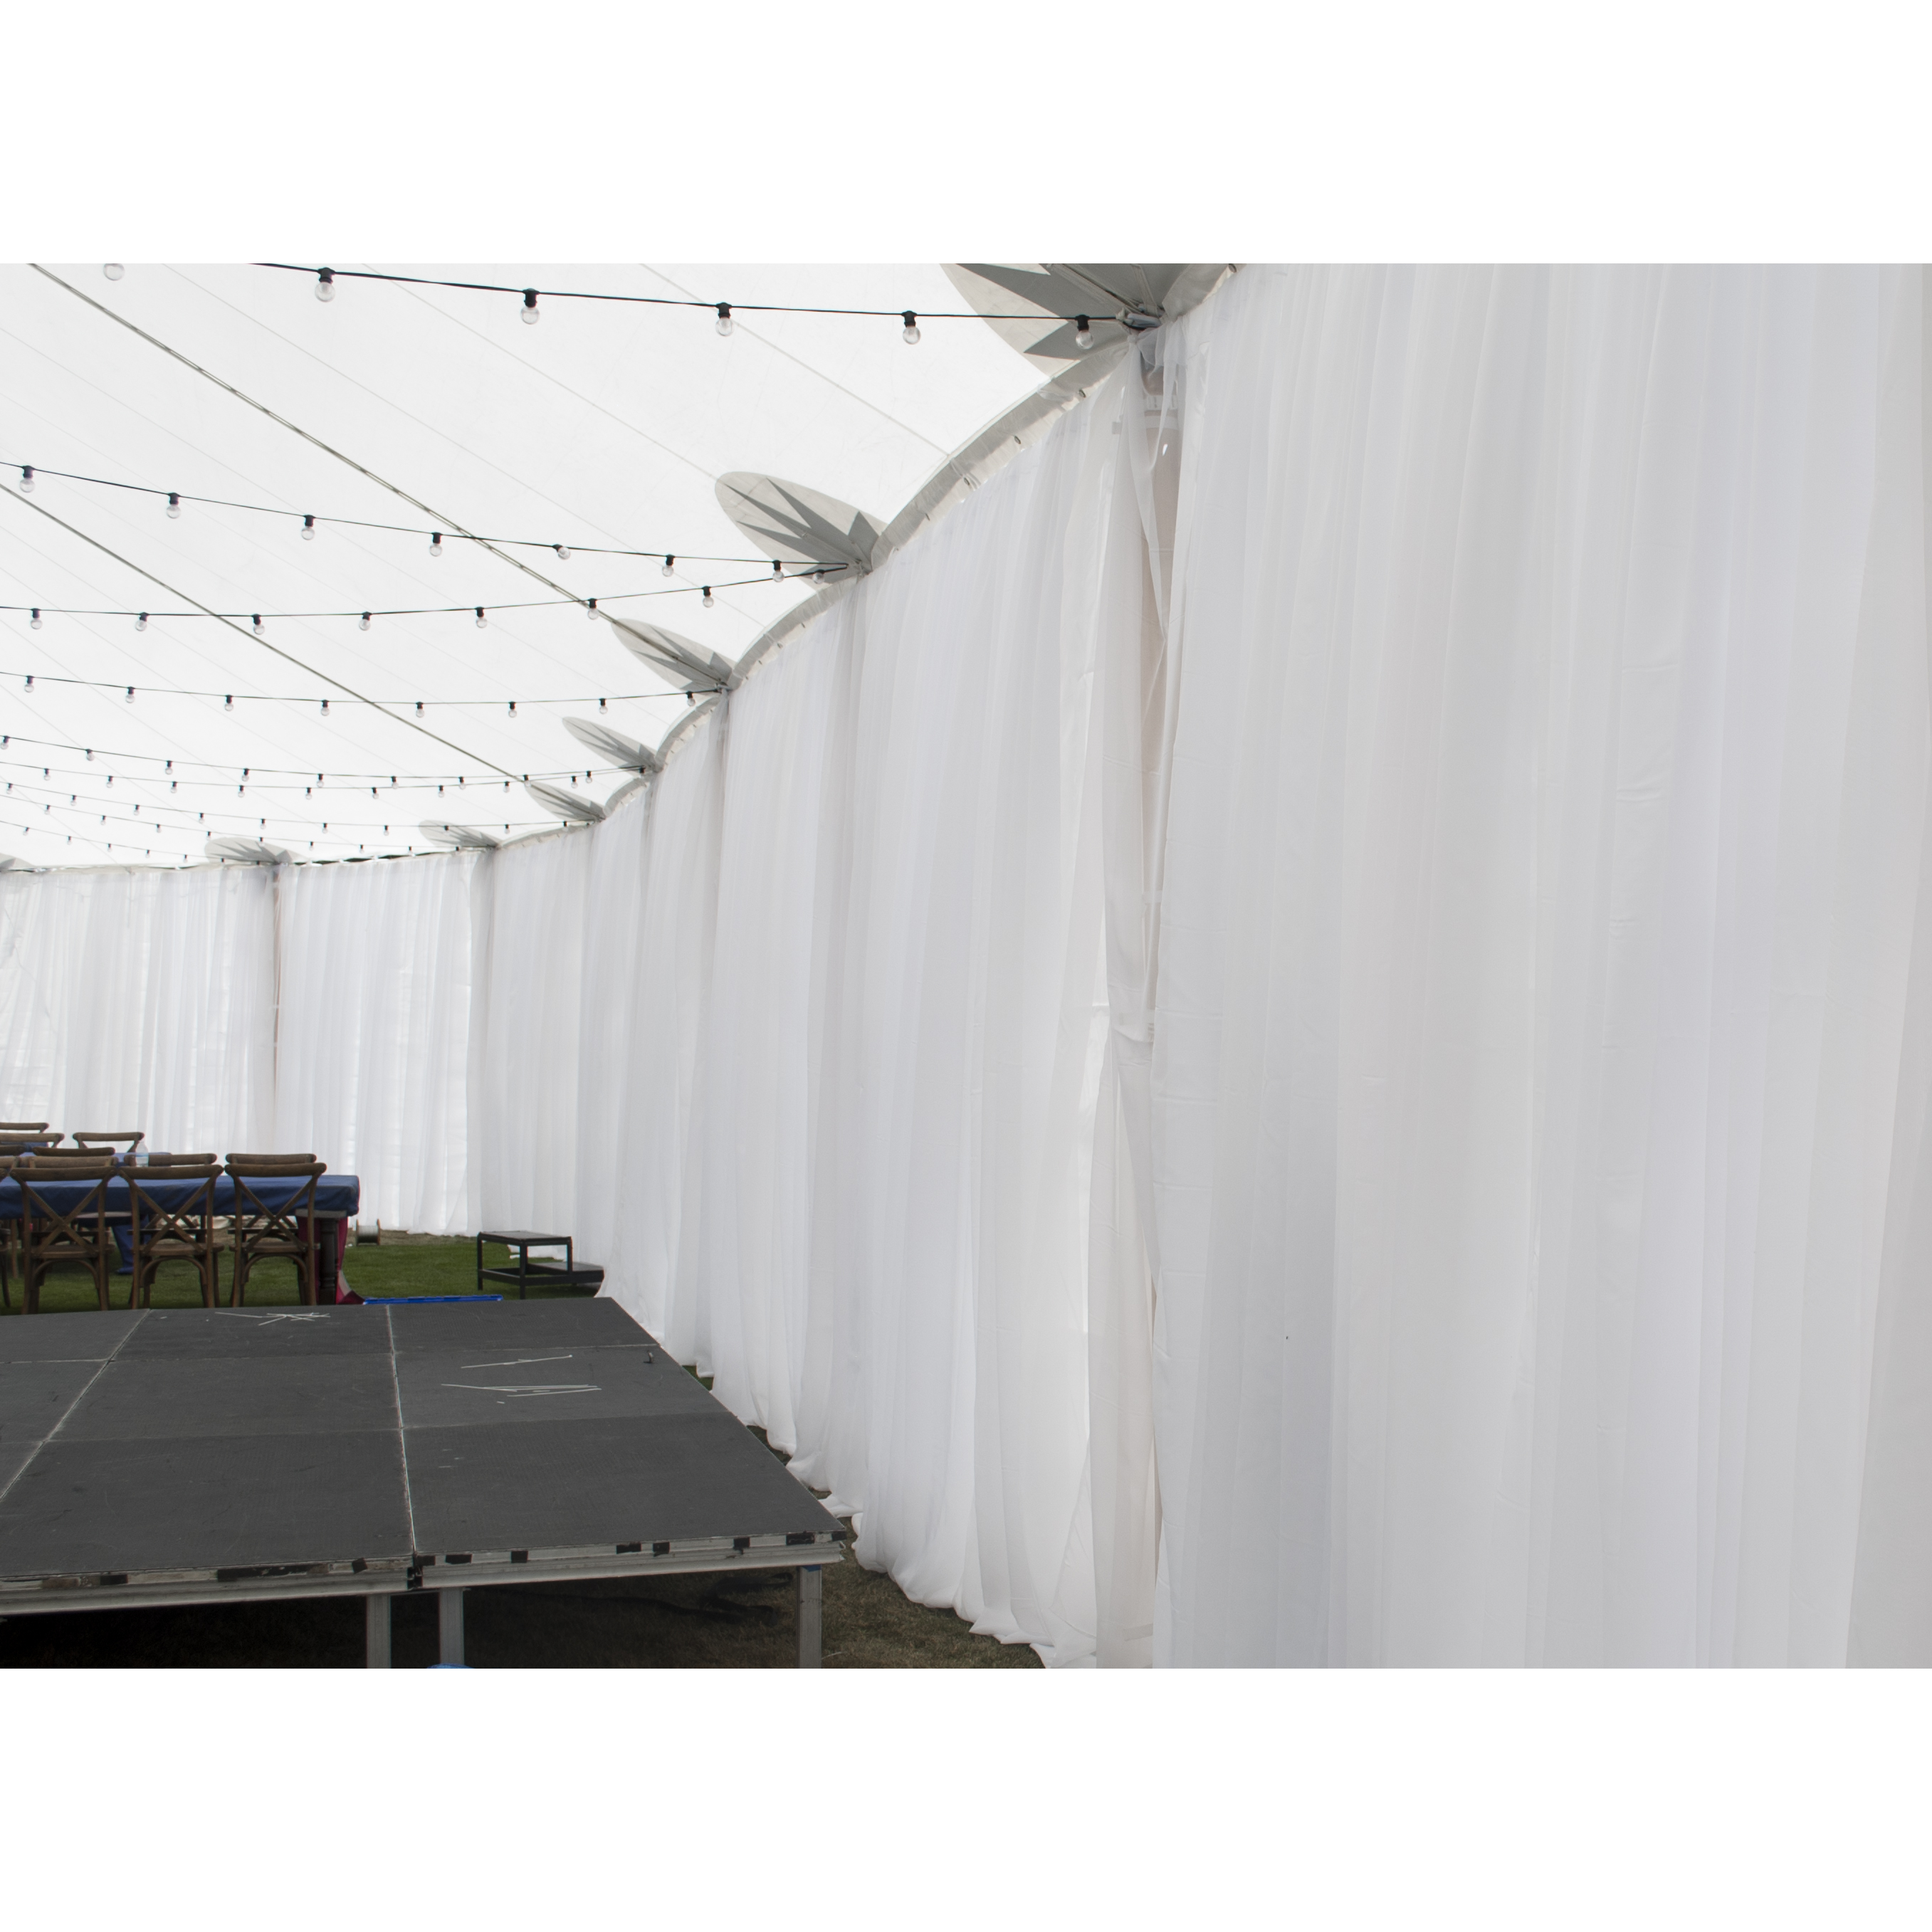 cabana party greenwich drapes ma pipe ct ri drape display ny in and rentals lighting